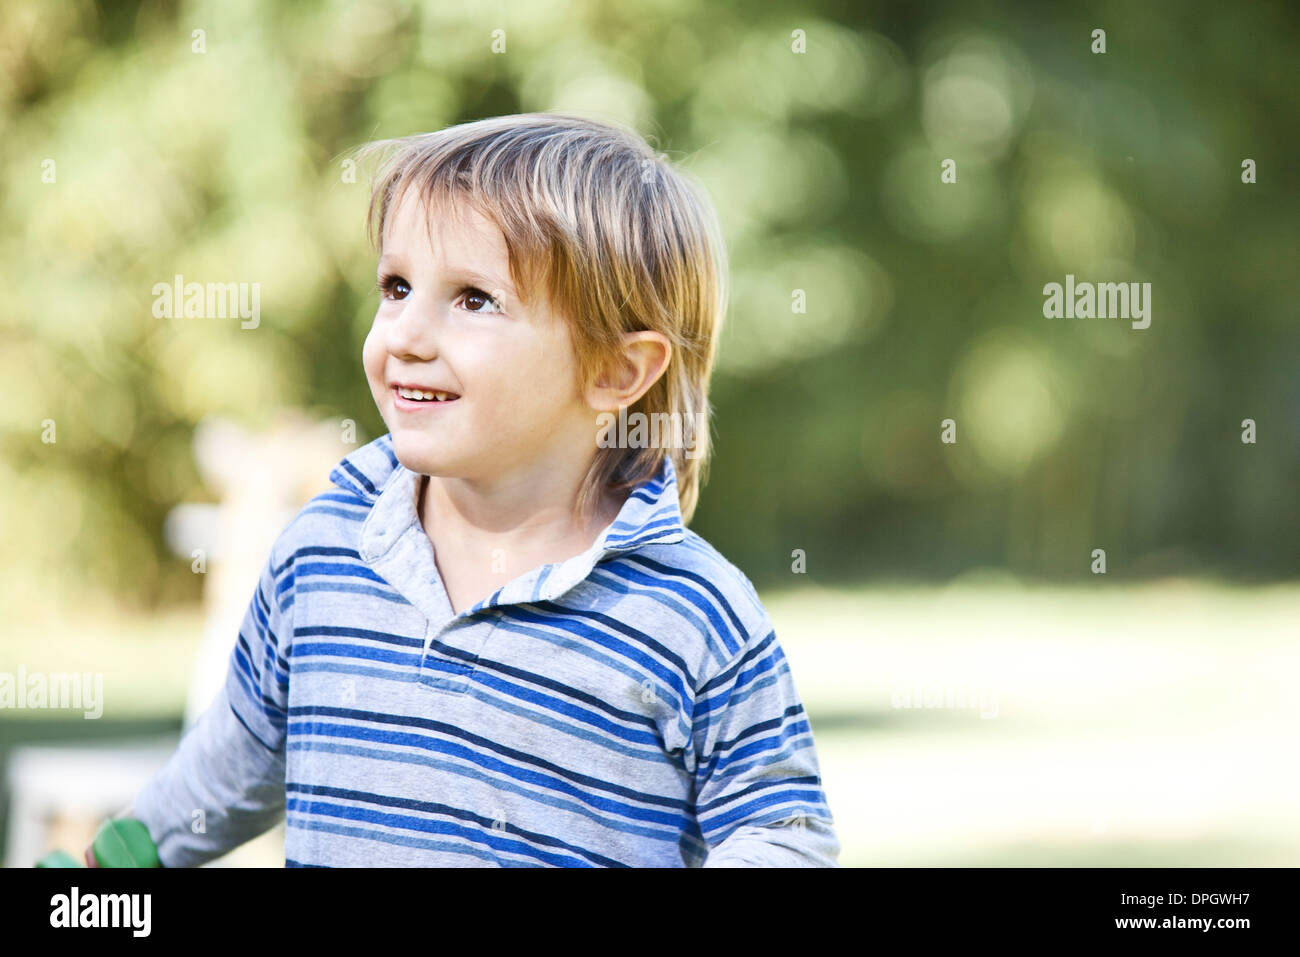 Boy looking up - Stock Image